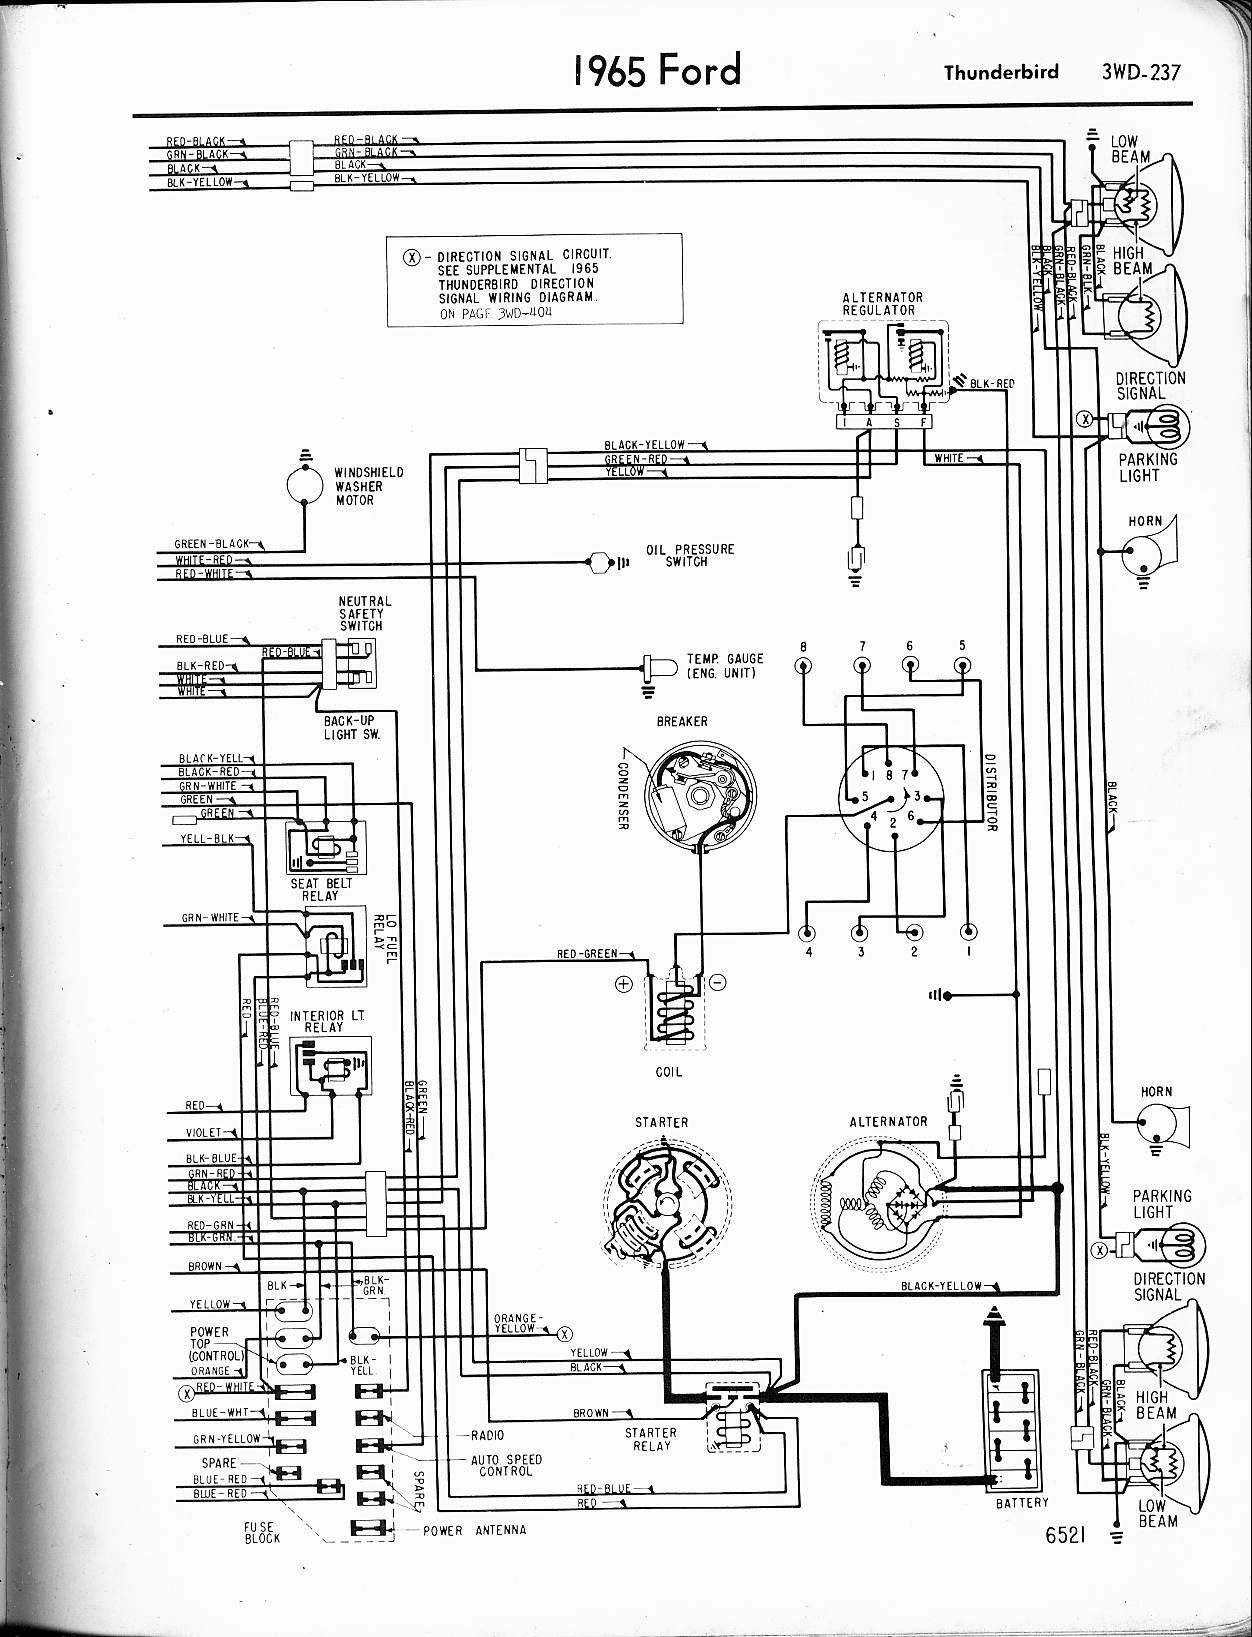 New Need Wiring Diagram #diagram #wiringdiagram #diagramming #Diagramm  #visuals #visualisation #graphical | Diagram, Ford thunderbird, FordPinterest